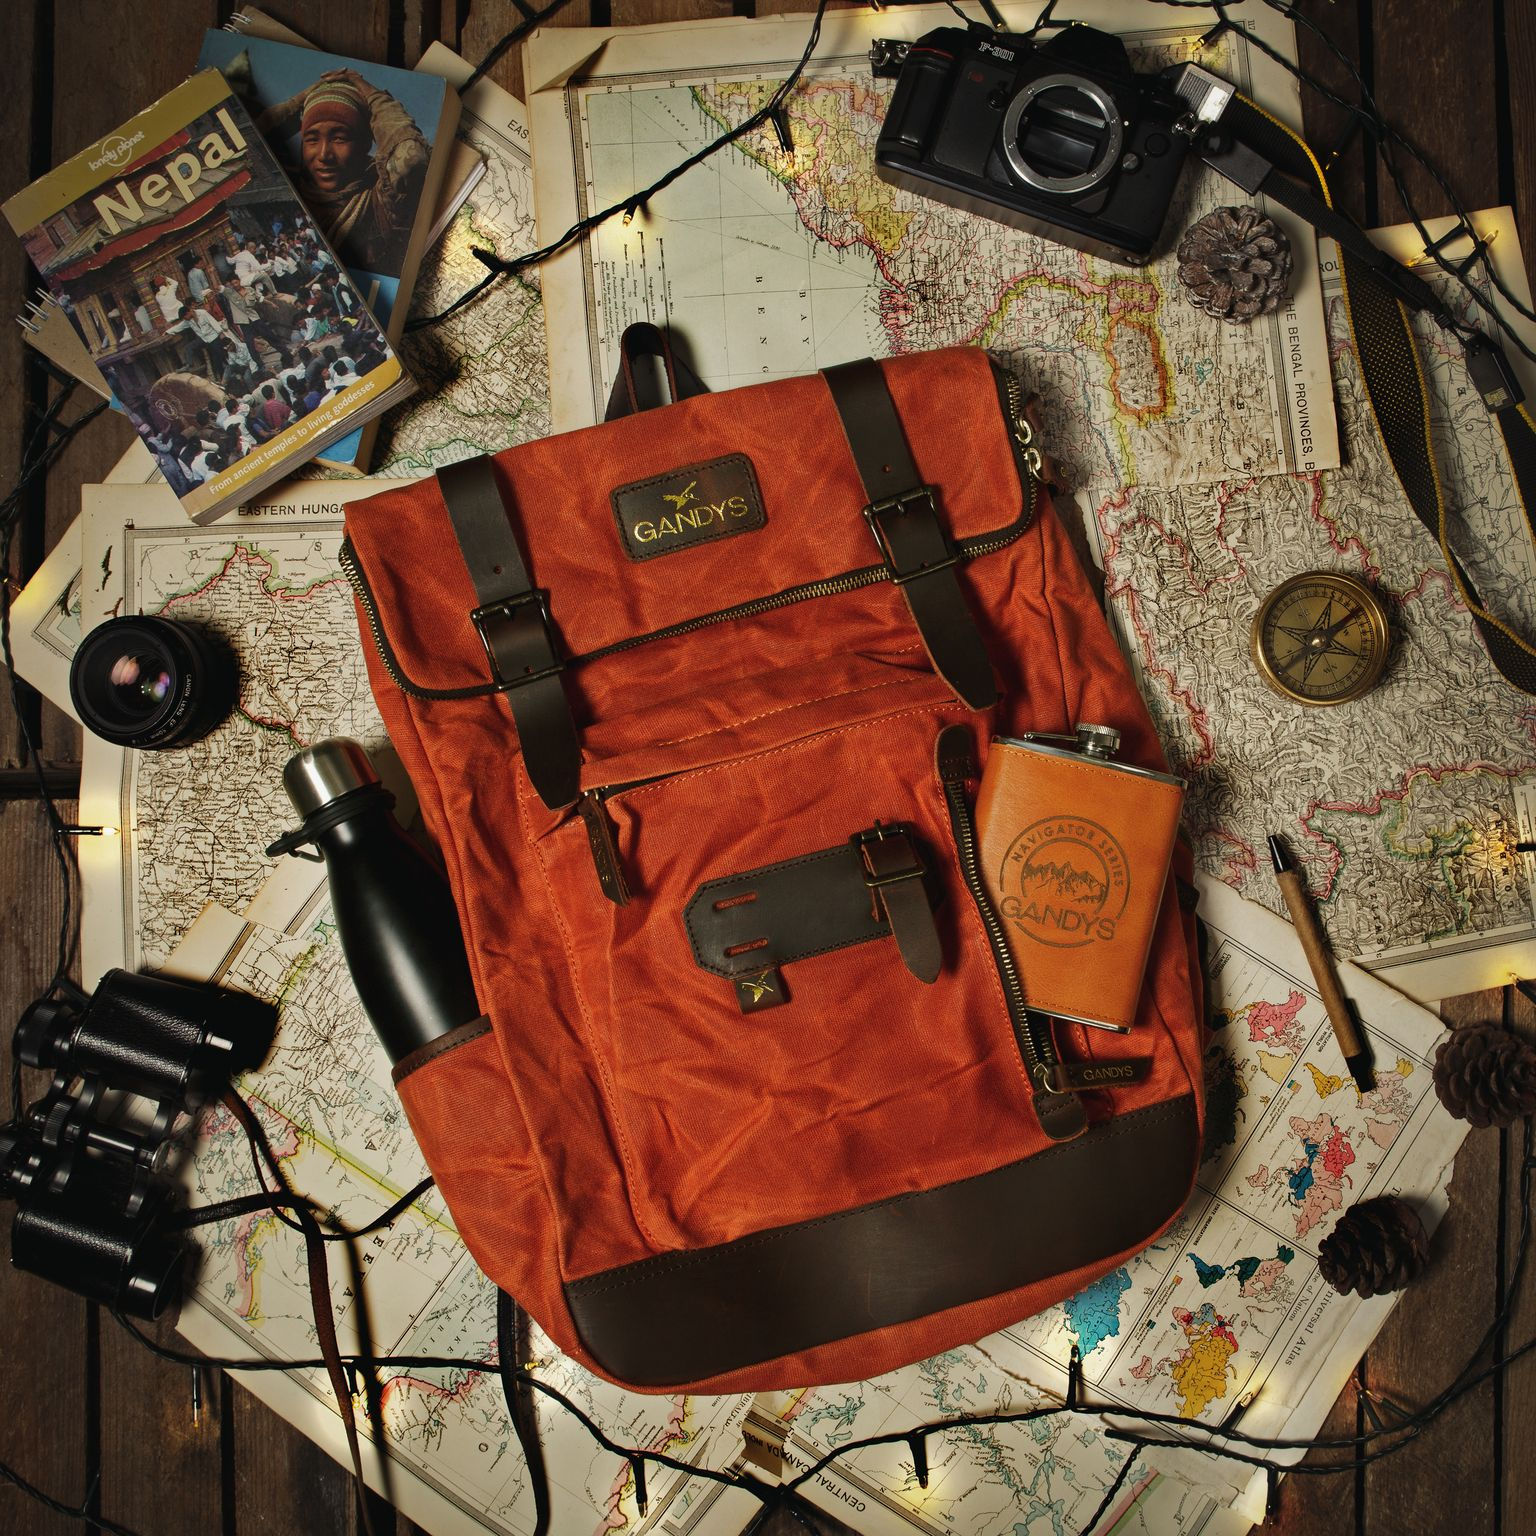 An orange Gandys backpack along with a flask is backdropped by maps and a compass in a flatlay.